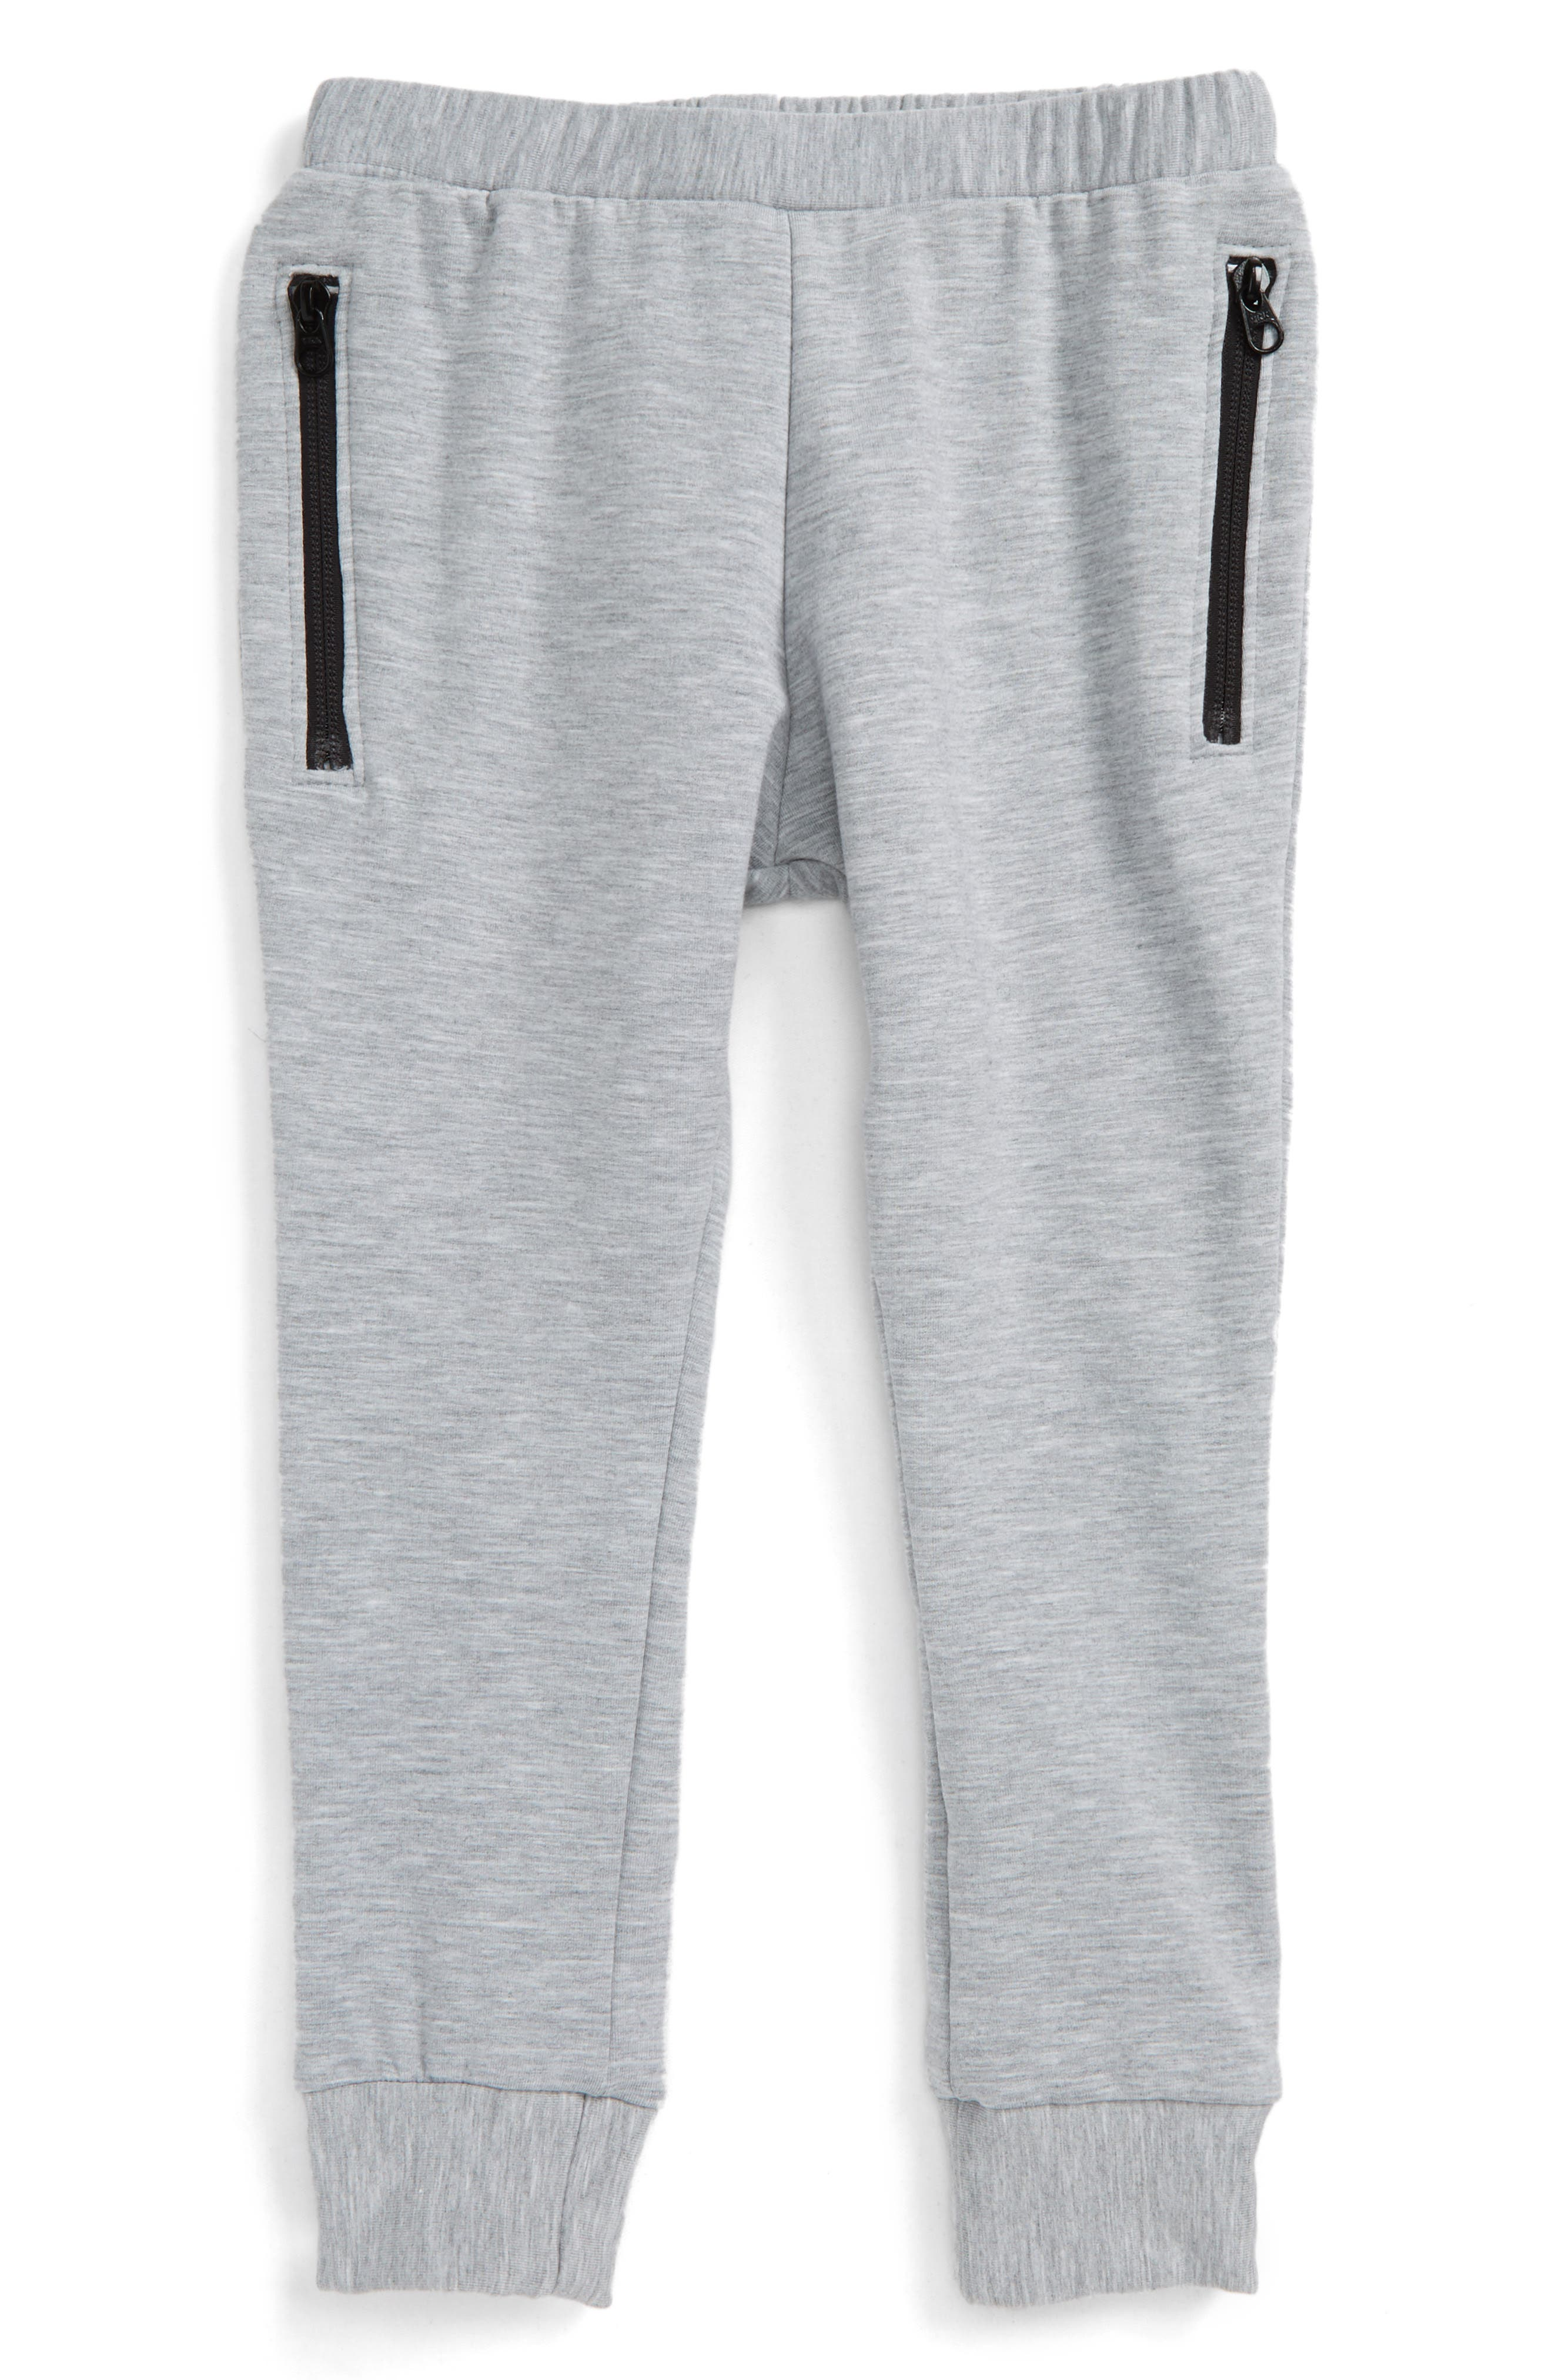 Philips Sweatpants,                             Main thumbnail 1, color,                             020